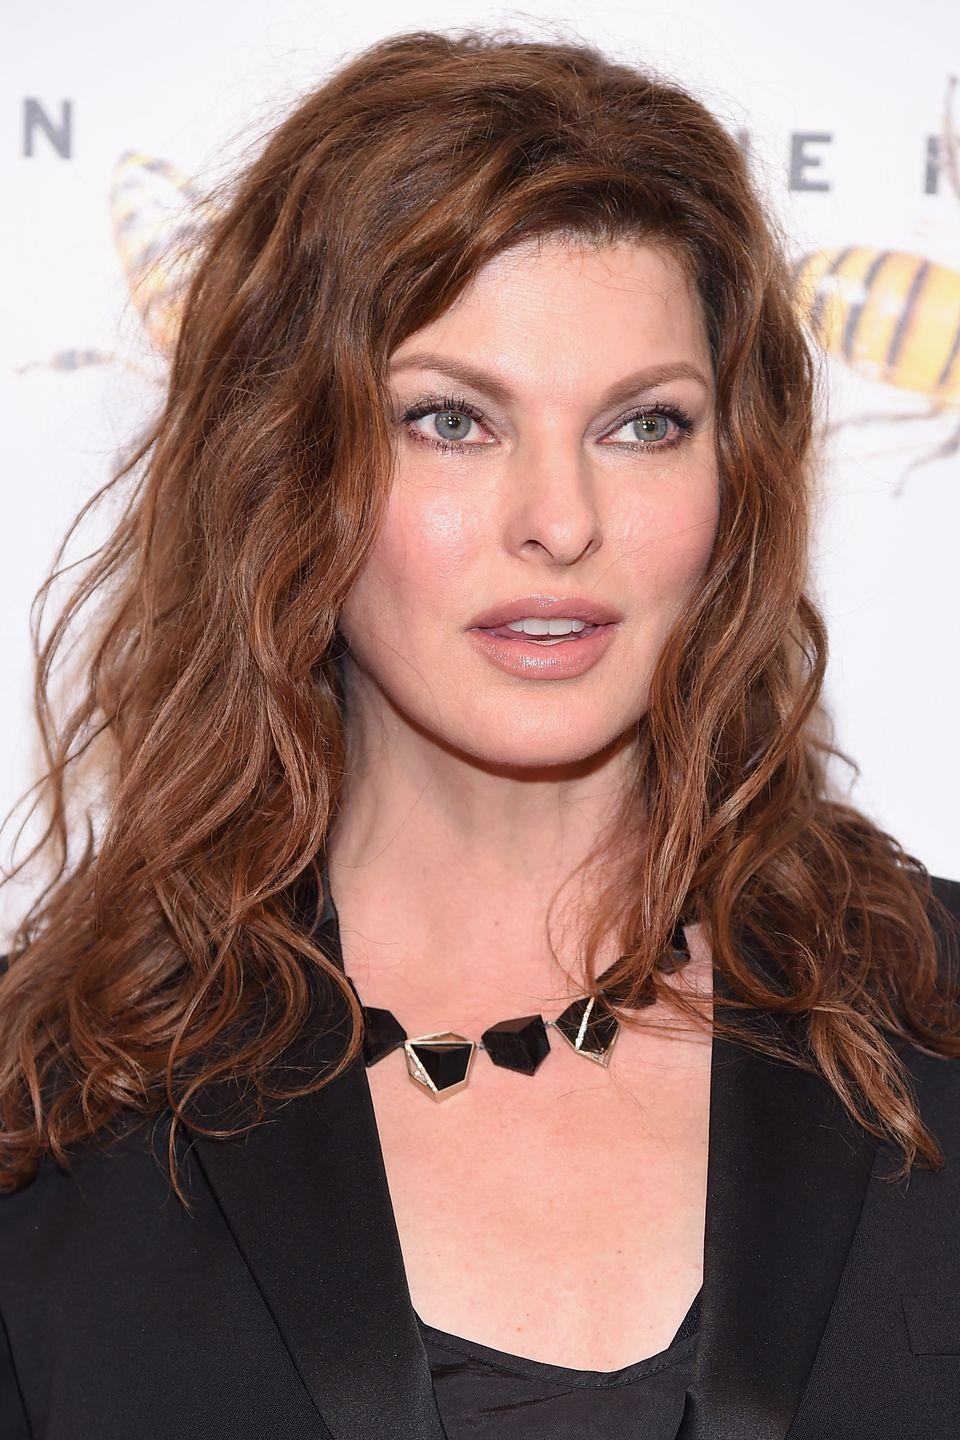 "<p>""I was the first person to ever admit that I did Botox, and my mom was upset,"" explained the supermodel Linda Evangelista to <a href=""https://www.harpersbazaar.com/beauty/skin-care/a18899/linda-evangelista-erasa/"" rel=""nofollow noopener"" target=""_blank"" data-ylk=""slk:Harper's Bazaar US"" class=""link rapid-noclick-resp"">Harper's Bazaar US</a>. </p><p>""I said, 'Mom everybody does it,' and she was like, 'Yeah but they don't say it.' So if I was the first one to tell the truth about using it then, why would I lie about it now?"" </p>"